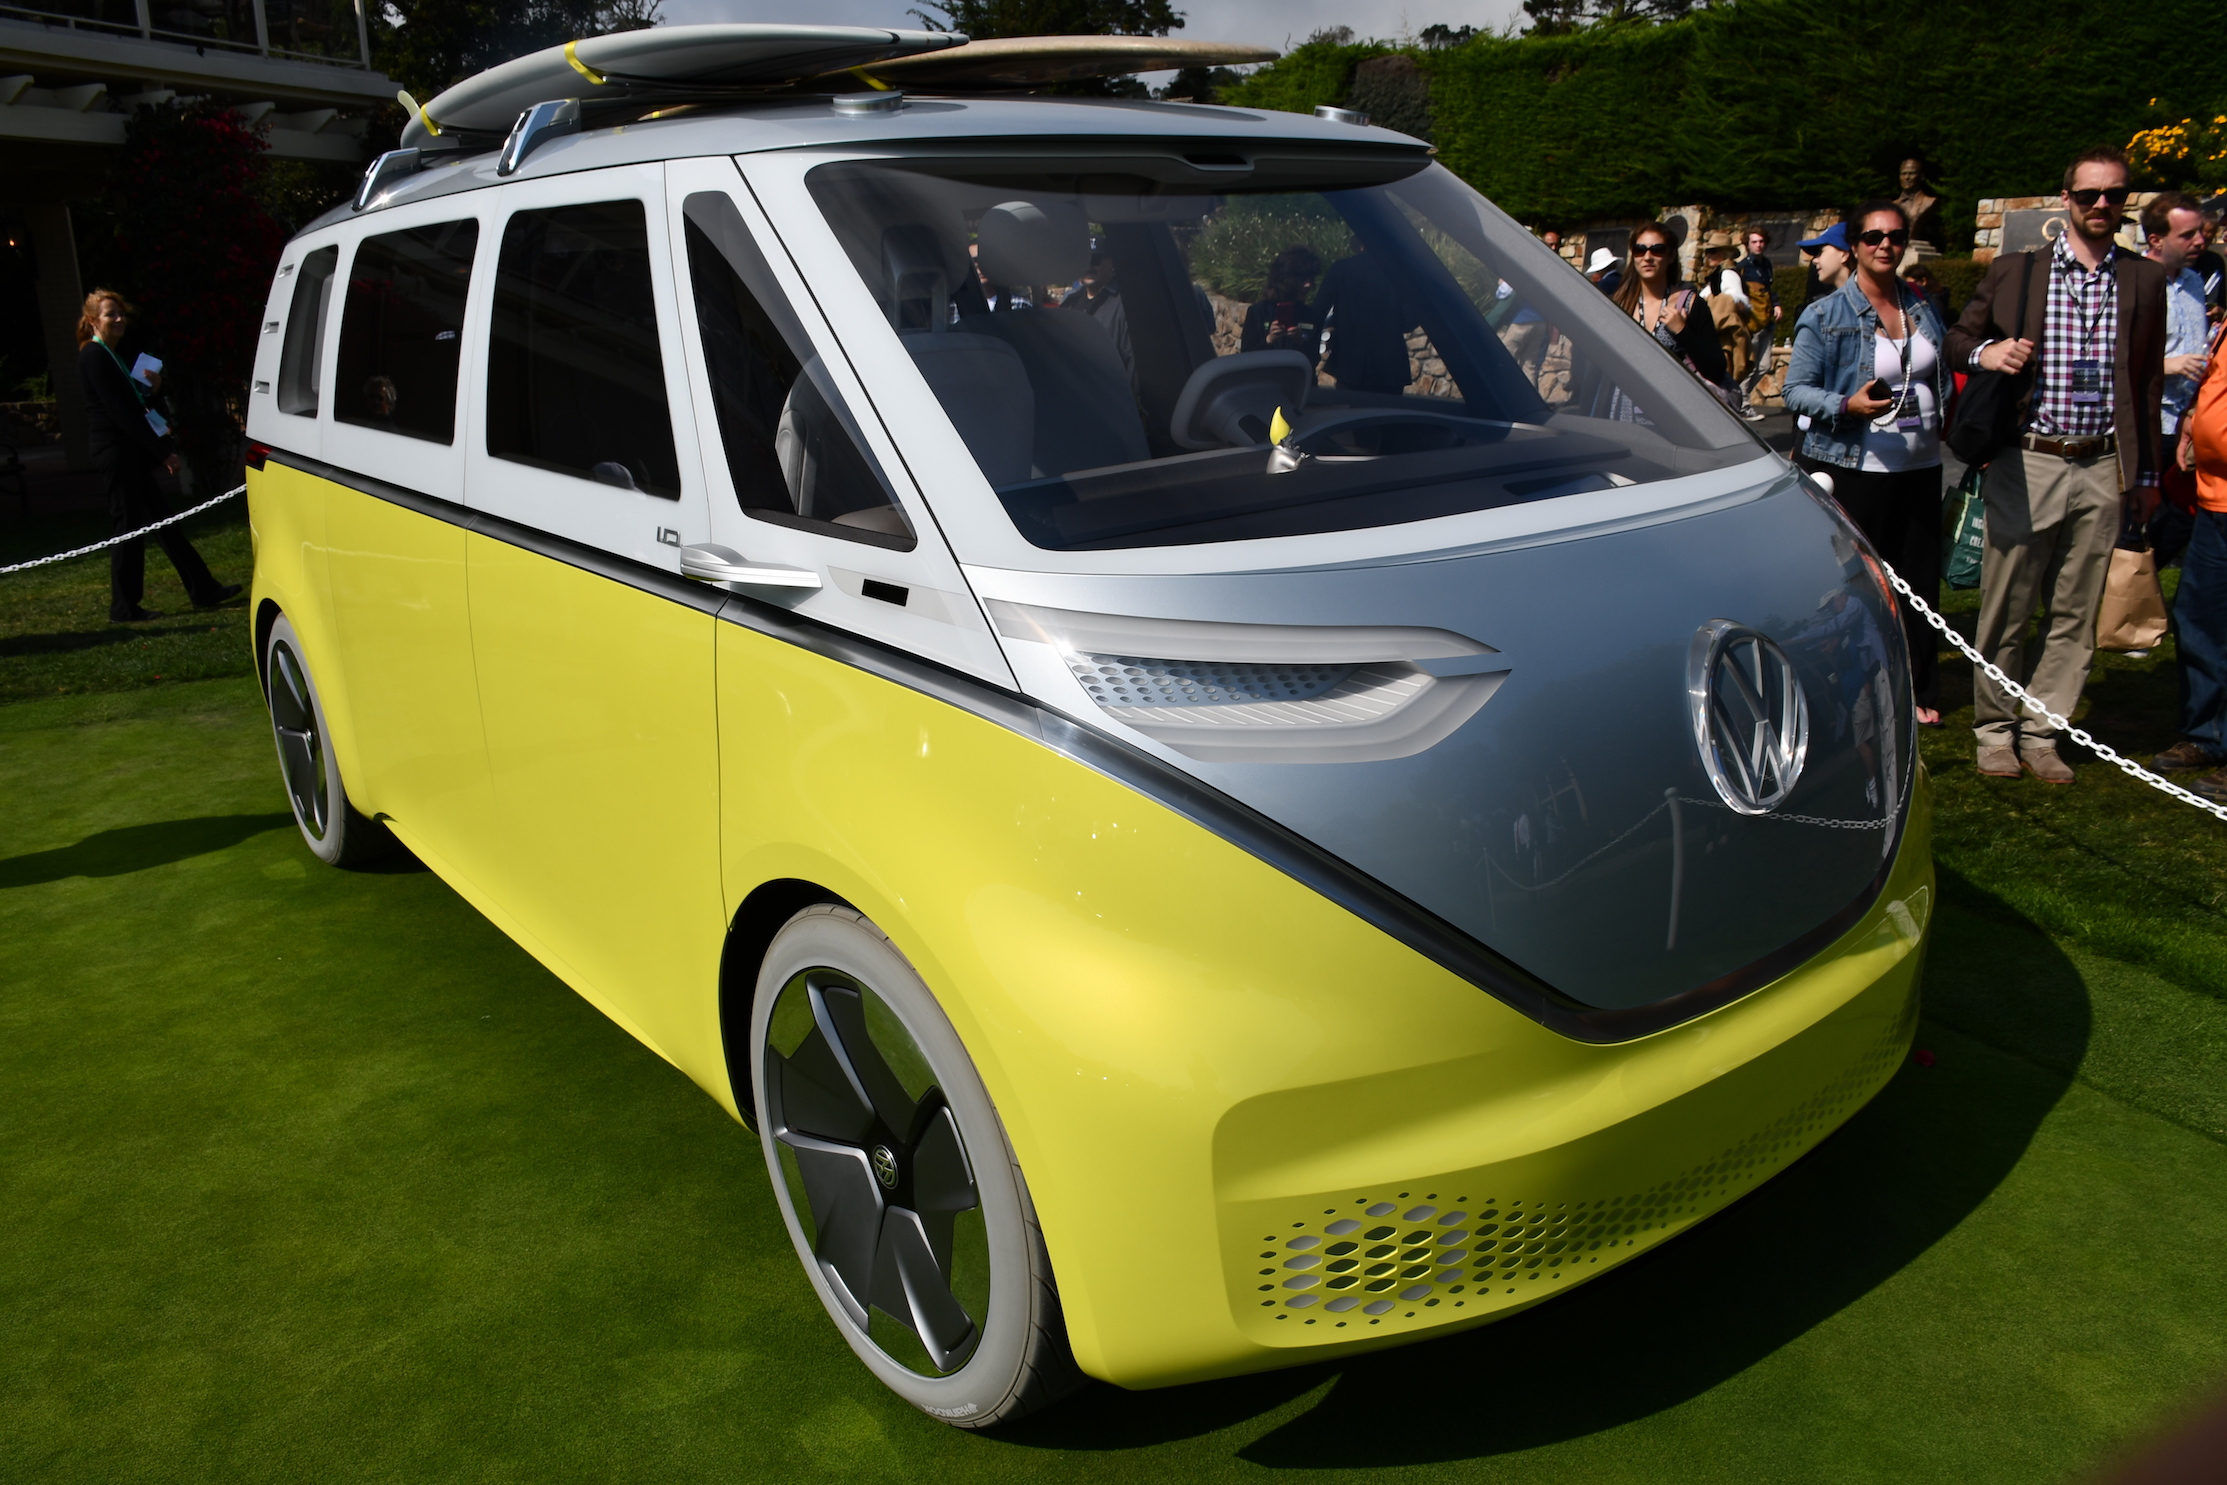 Driven By Por Demand Volkswagen Announced Today It Is Planning On Ing A Production Version Of The Award Winning I D Buzz Concept Electric Vehicle